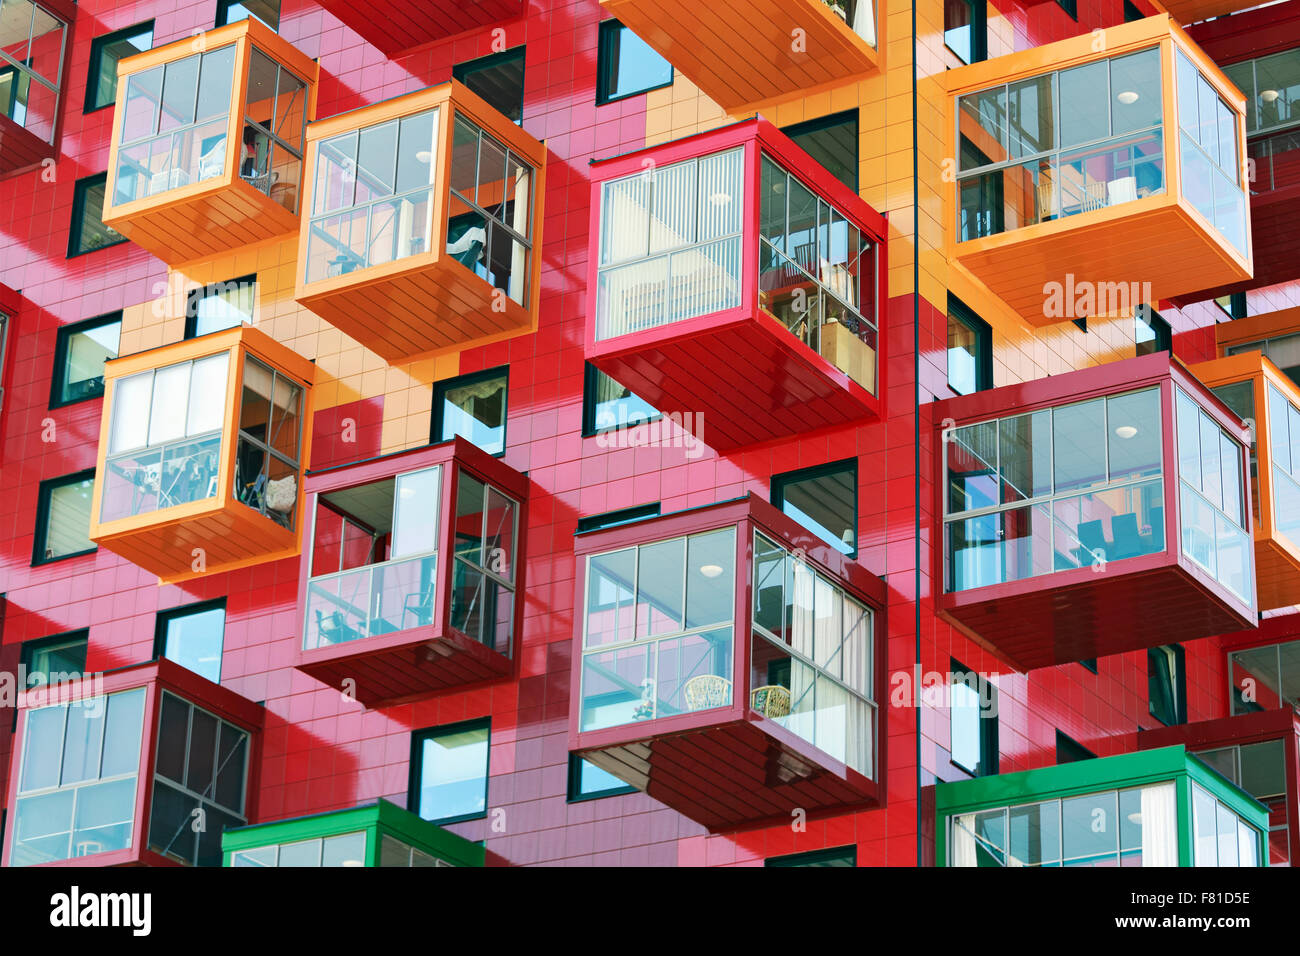 Colorful residential tower, Ting 1, with balconies and colourful facades, detail, architect Gert Wingårdh, - Stock Image